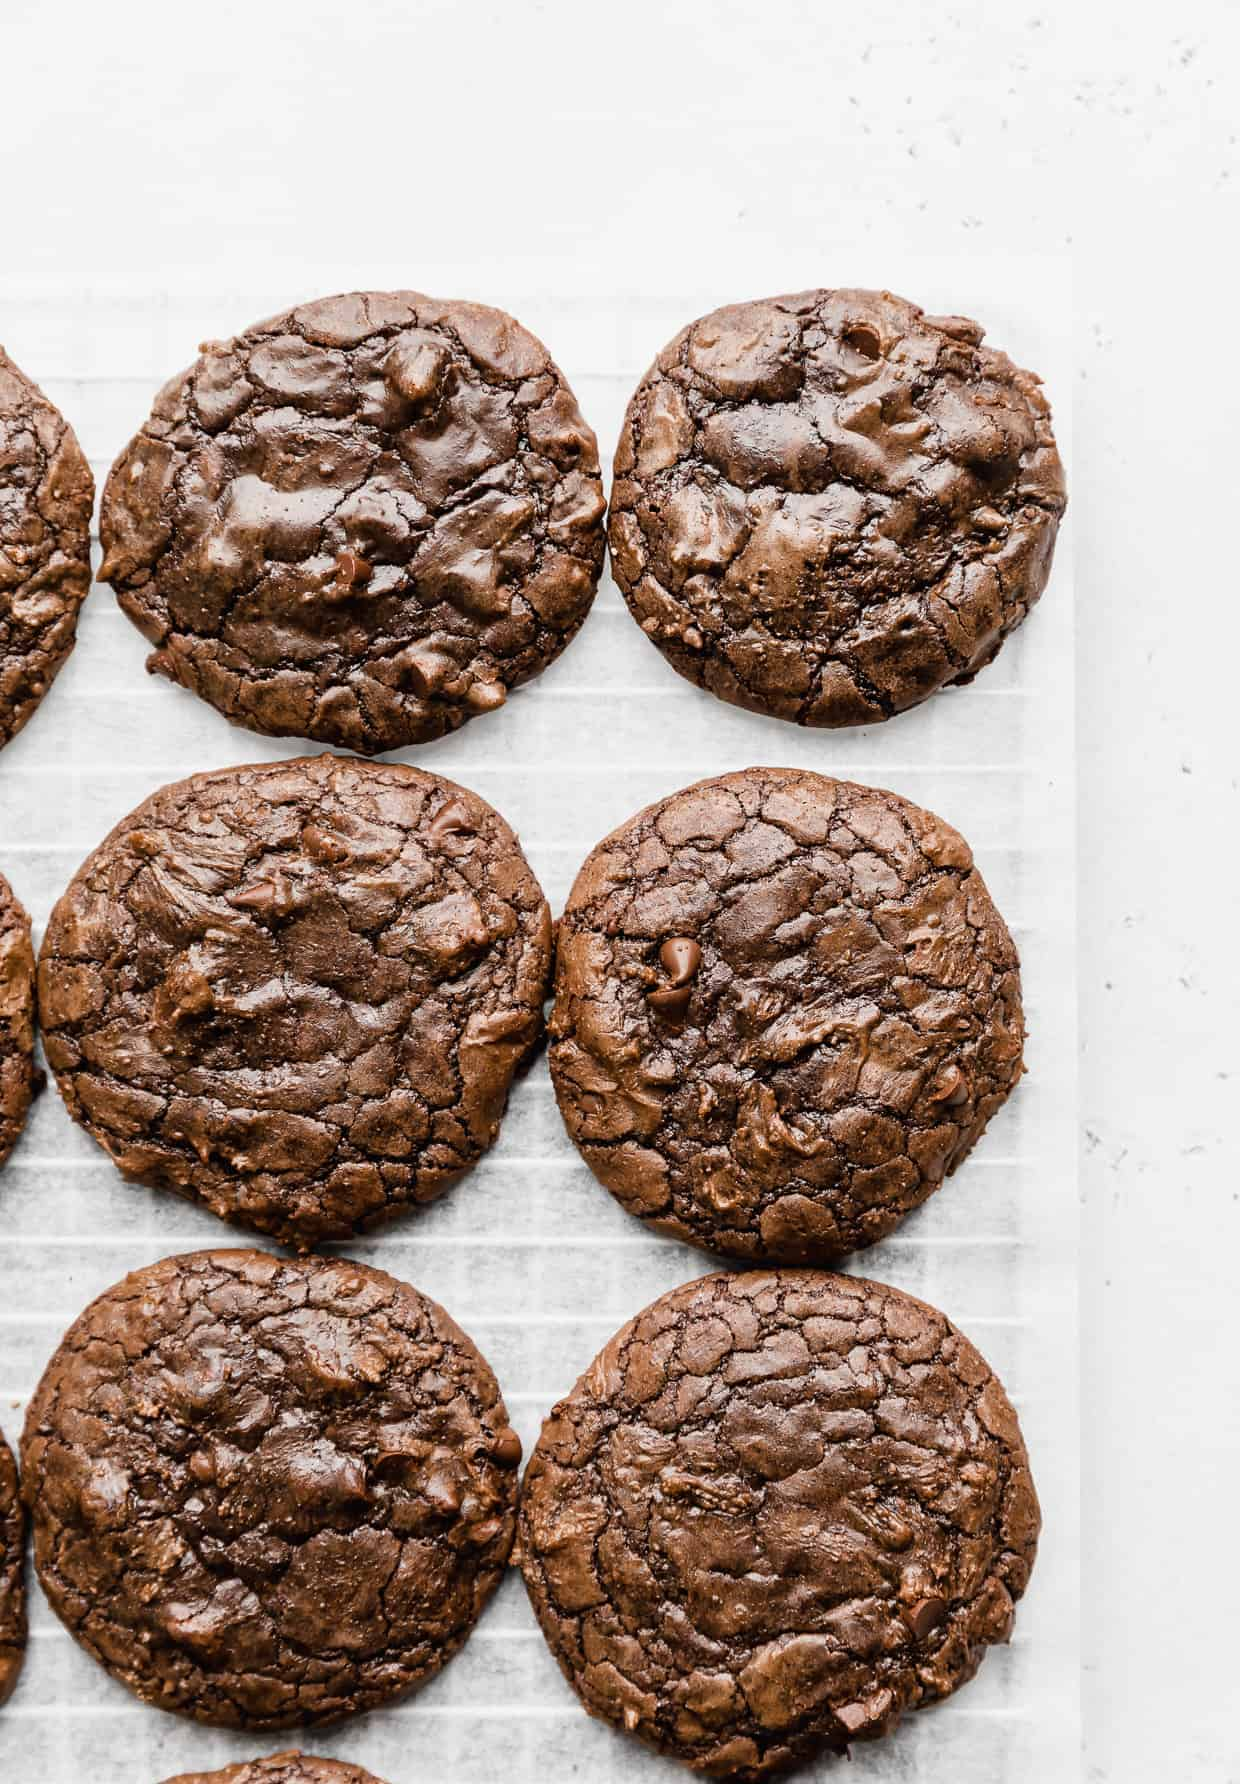 Crackly top brownie mix cookies against a white parchment background.